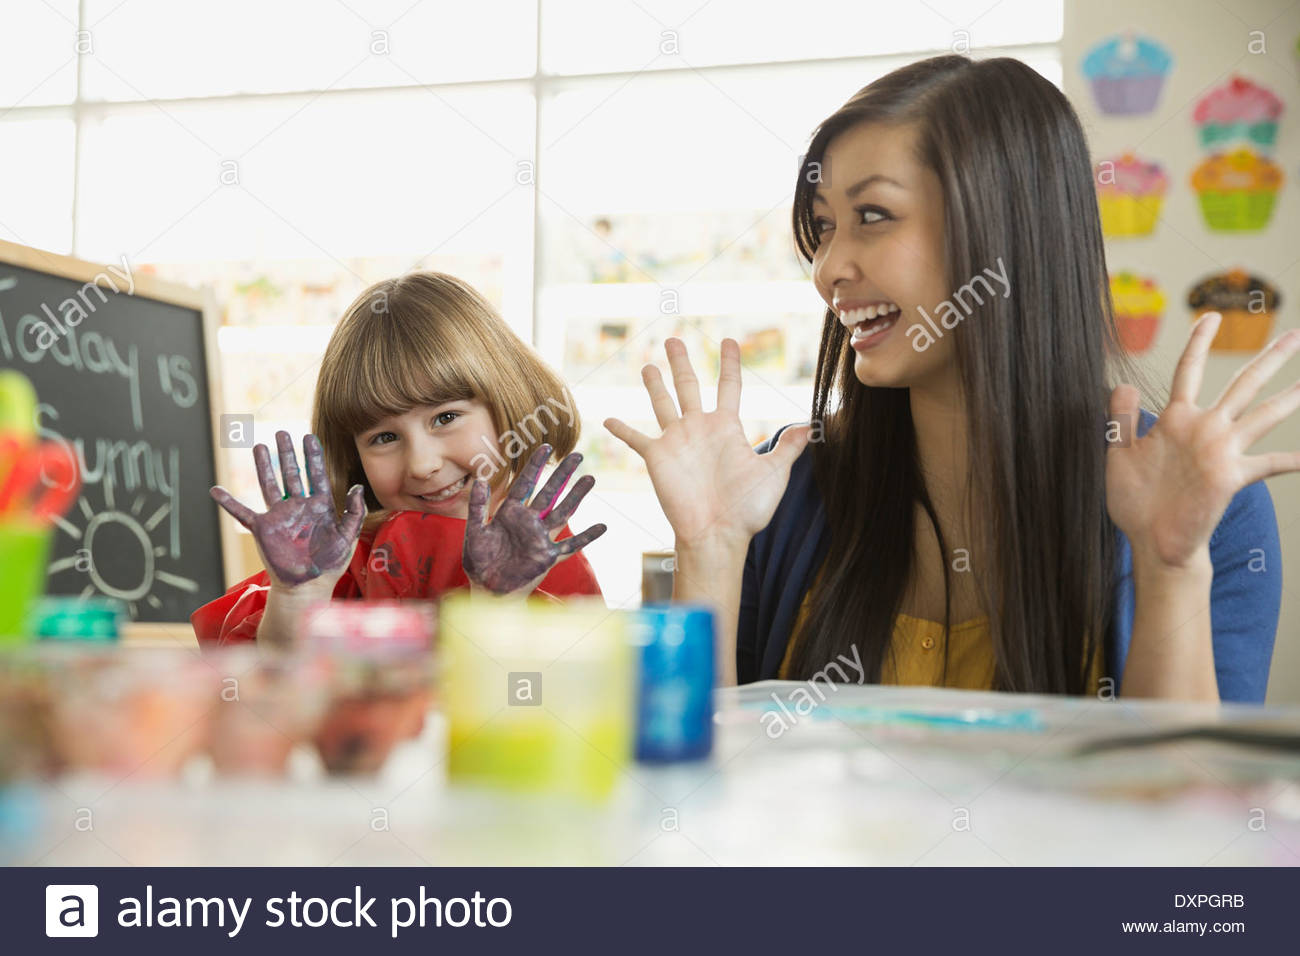 Teacher with girl finger painting in art class - Stock Image